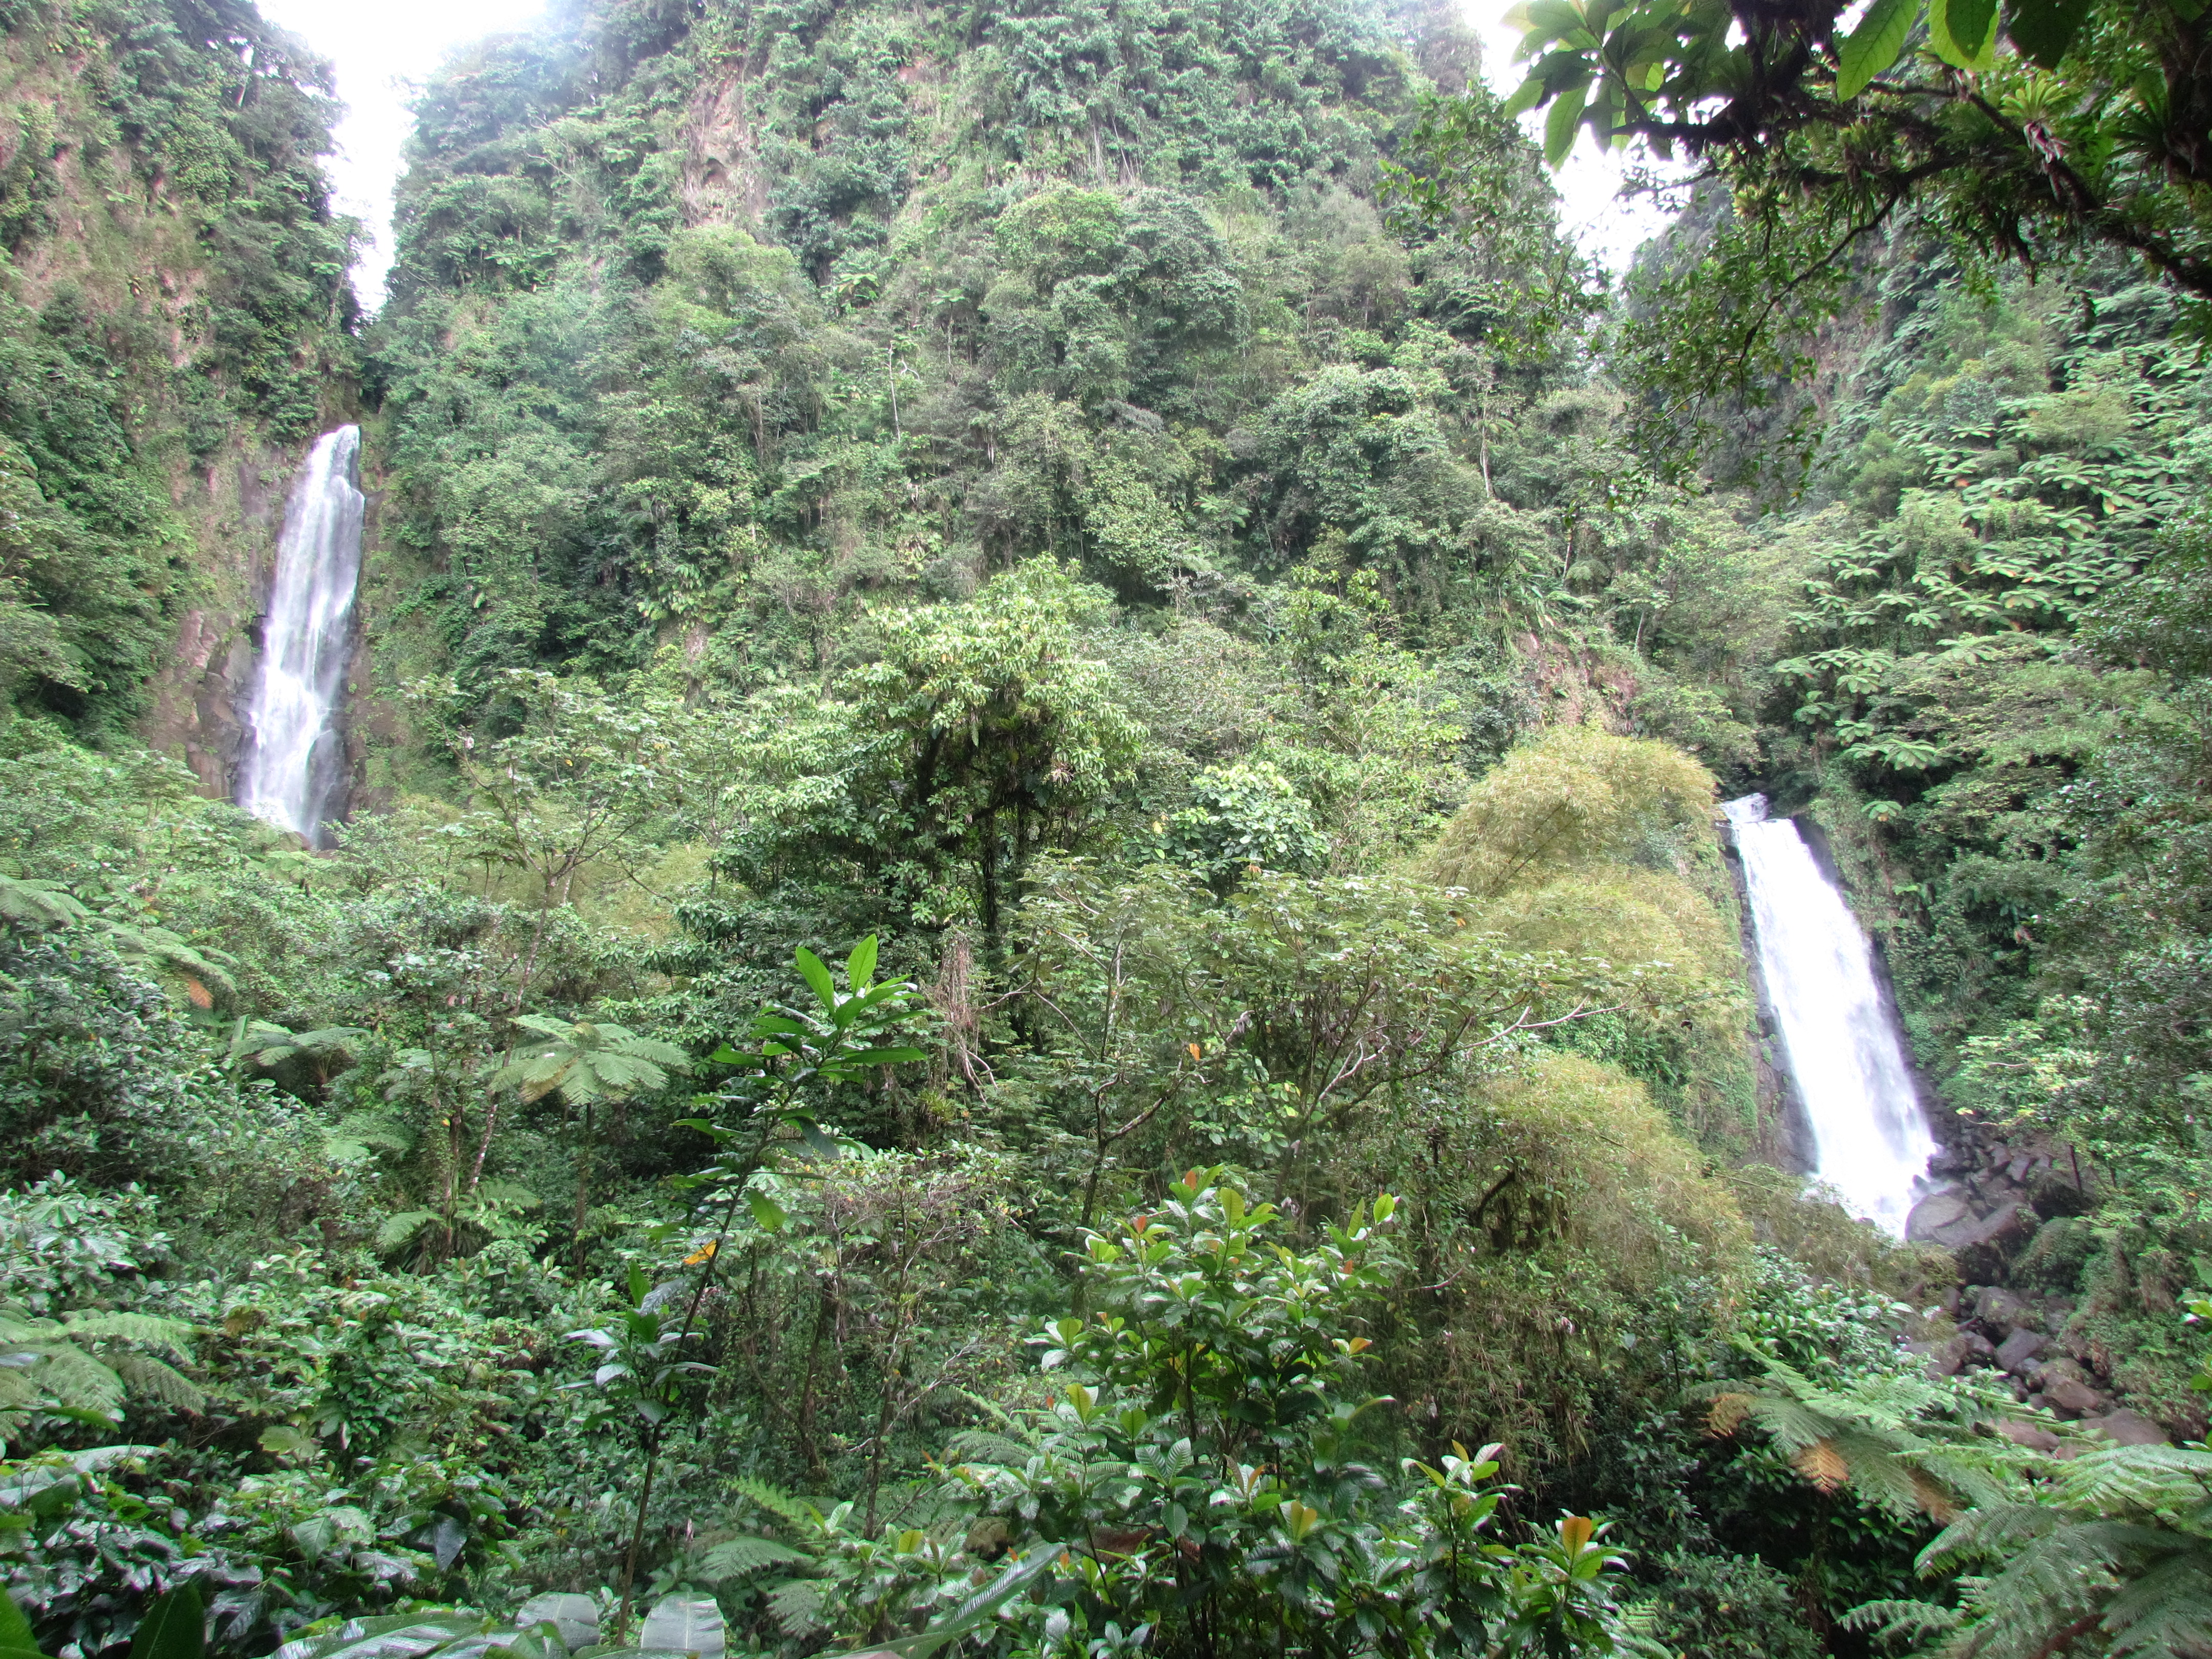 Trafalgar Falls Trafalgar Falls, Trafalgar Falls and Botanical Gardens   Dominica 2012